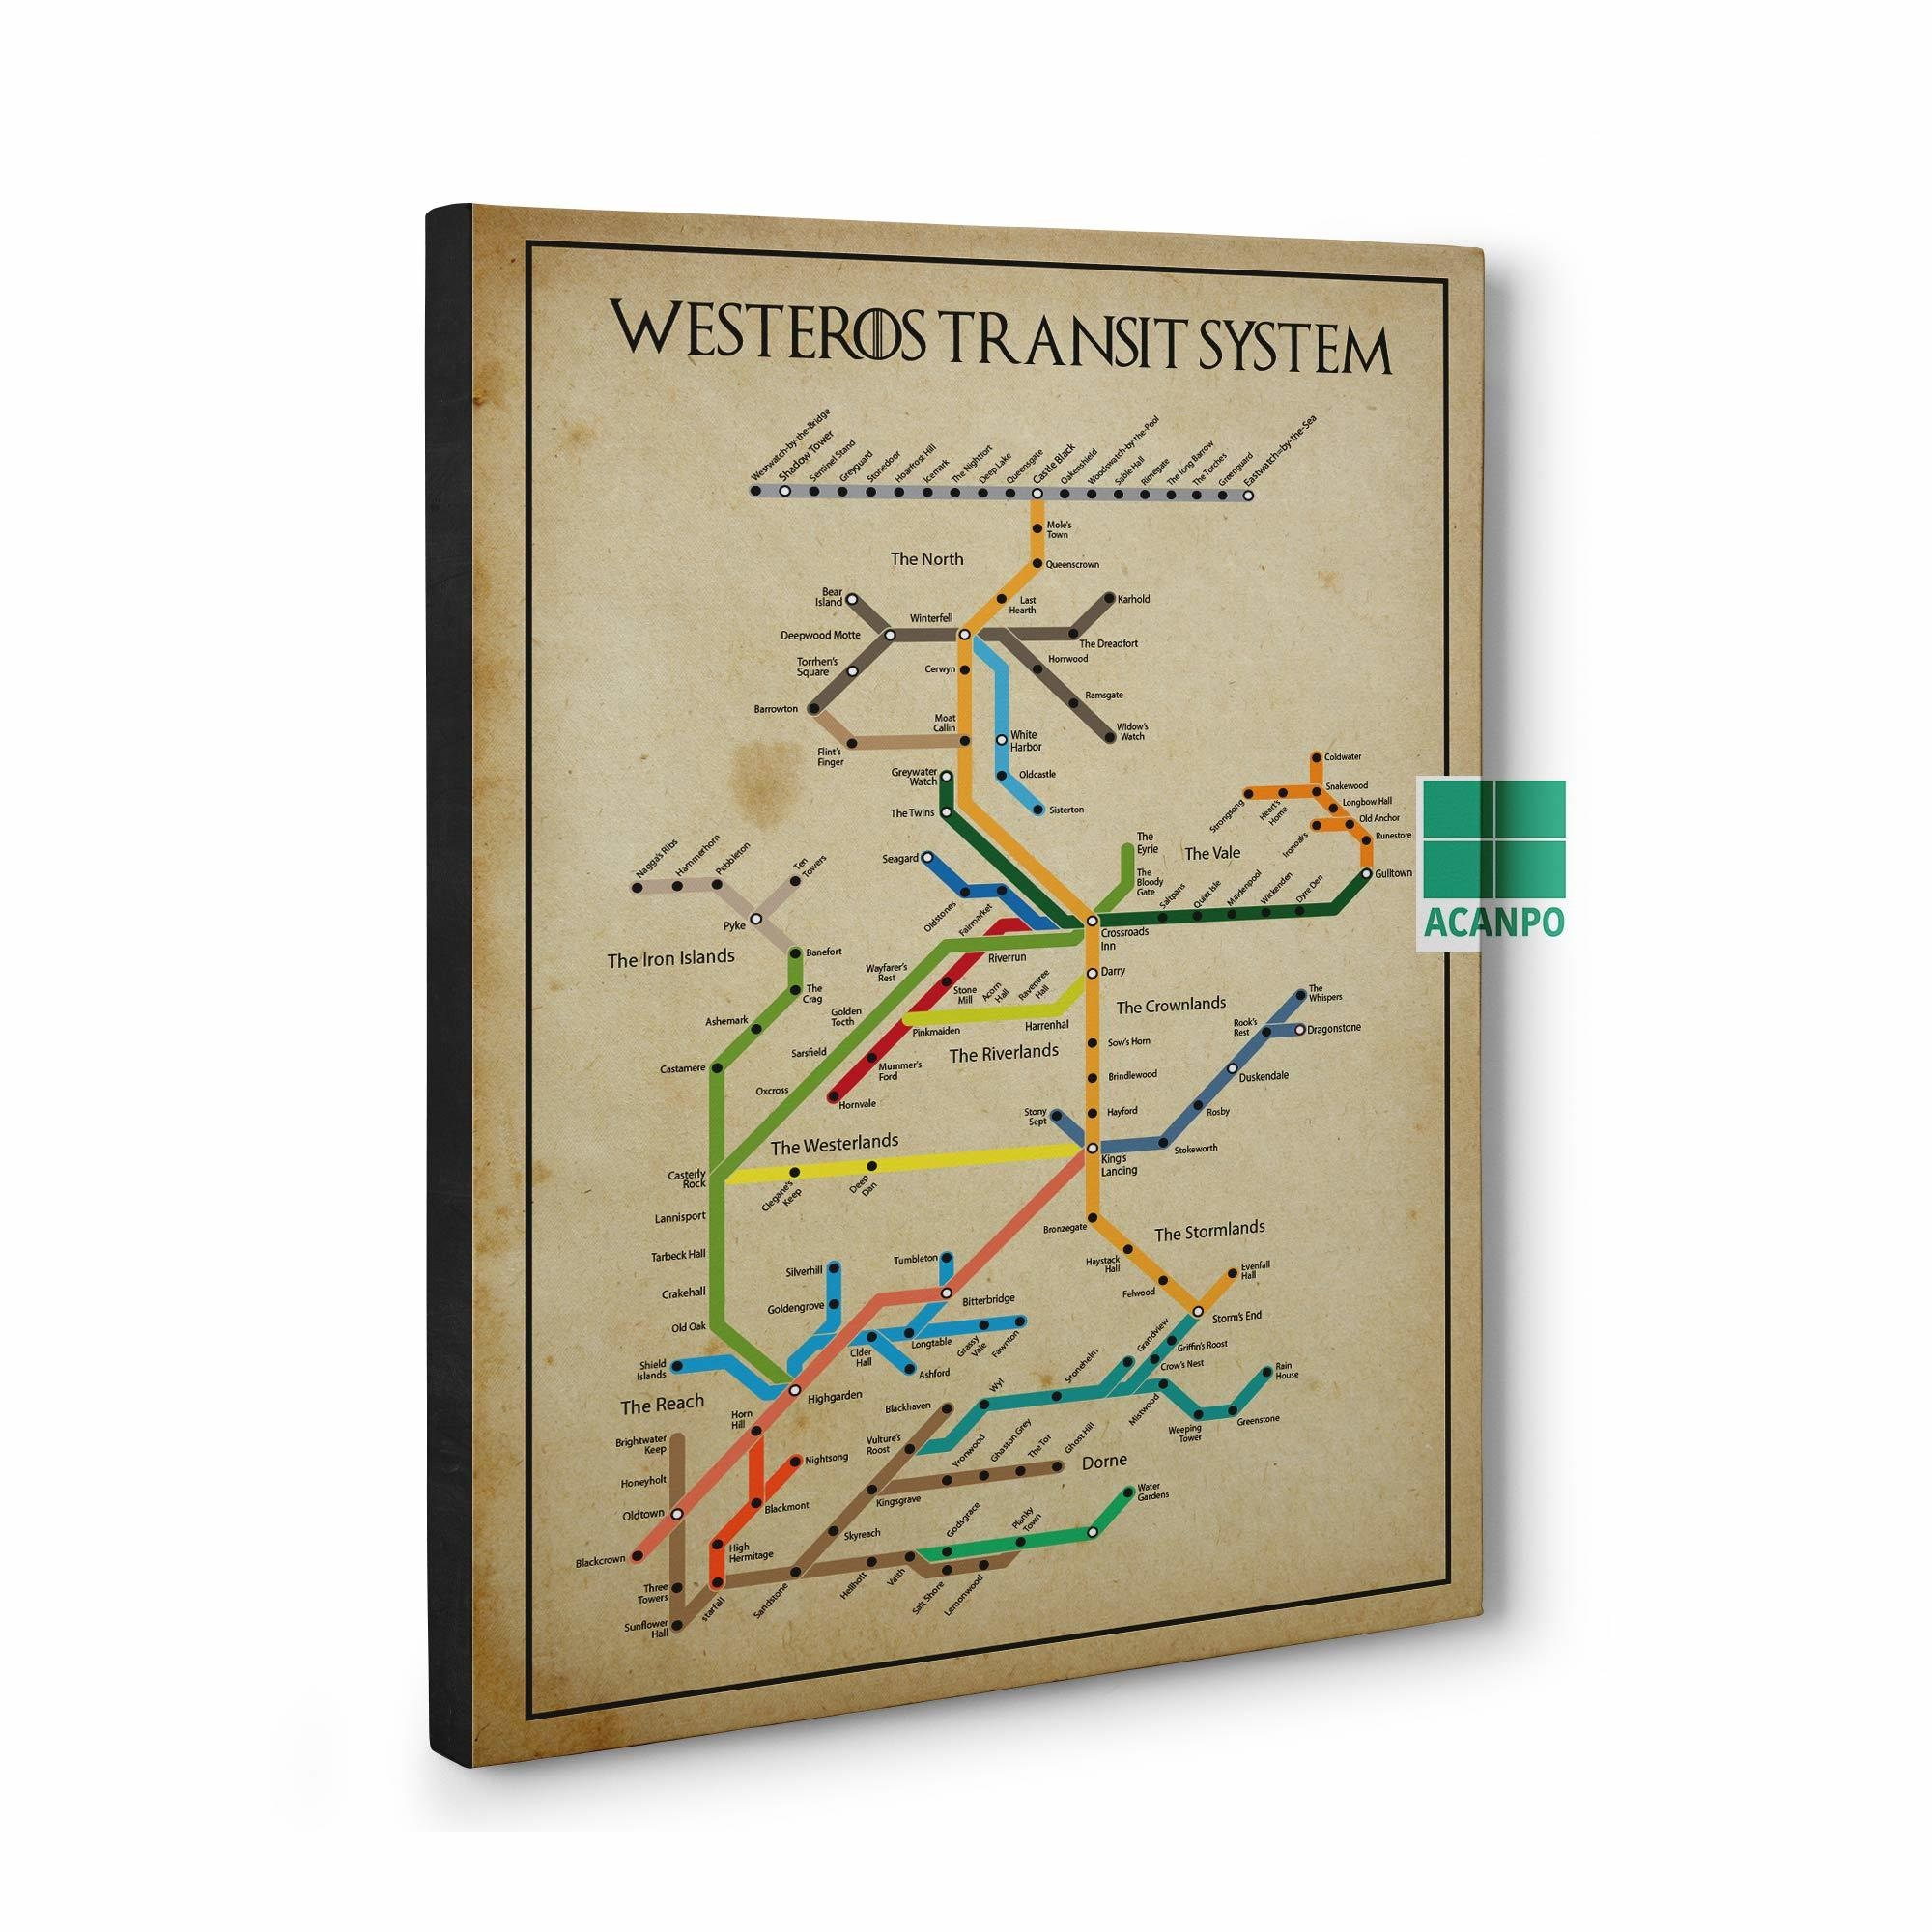 Game Of Thrones Subway Map.Framed Canvas Game Of Thrones Subway Poster Westeros Transit System Poster Game Of Thrones Map G